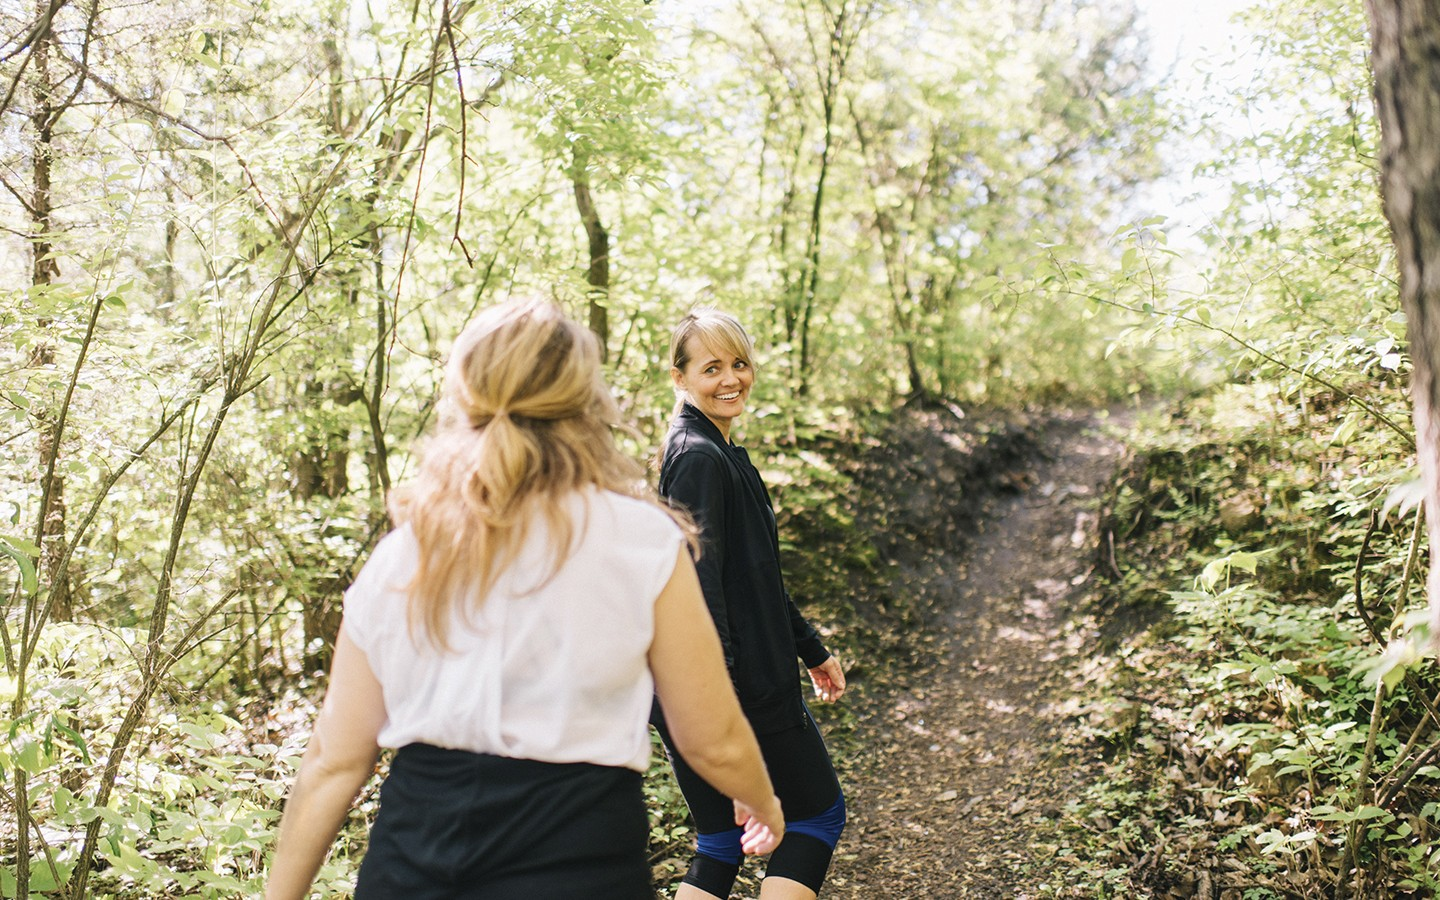 Two women walking through the forest together